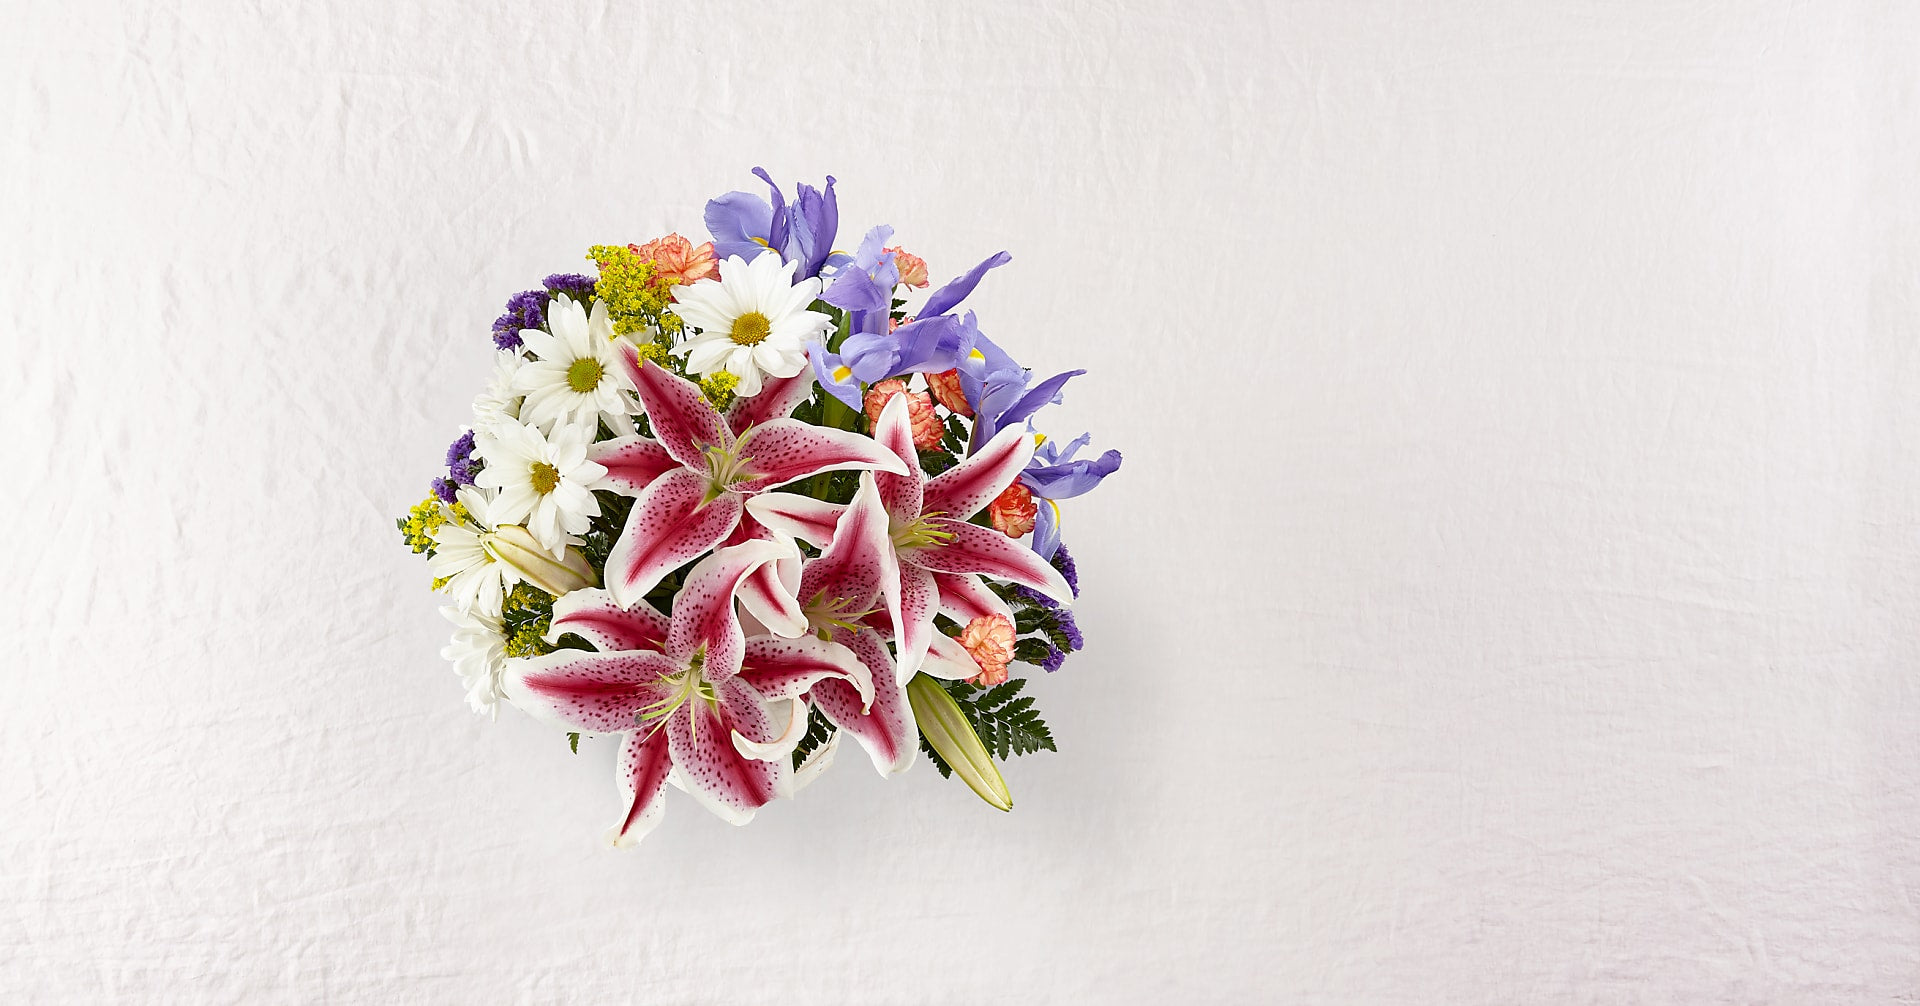 The Wondrous Nature Bouquet - Image 2 Of 3